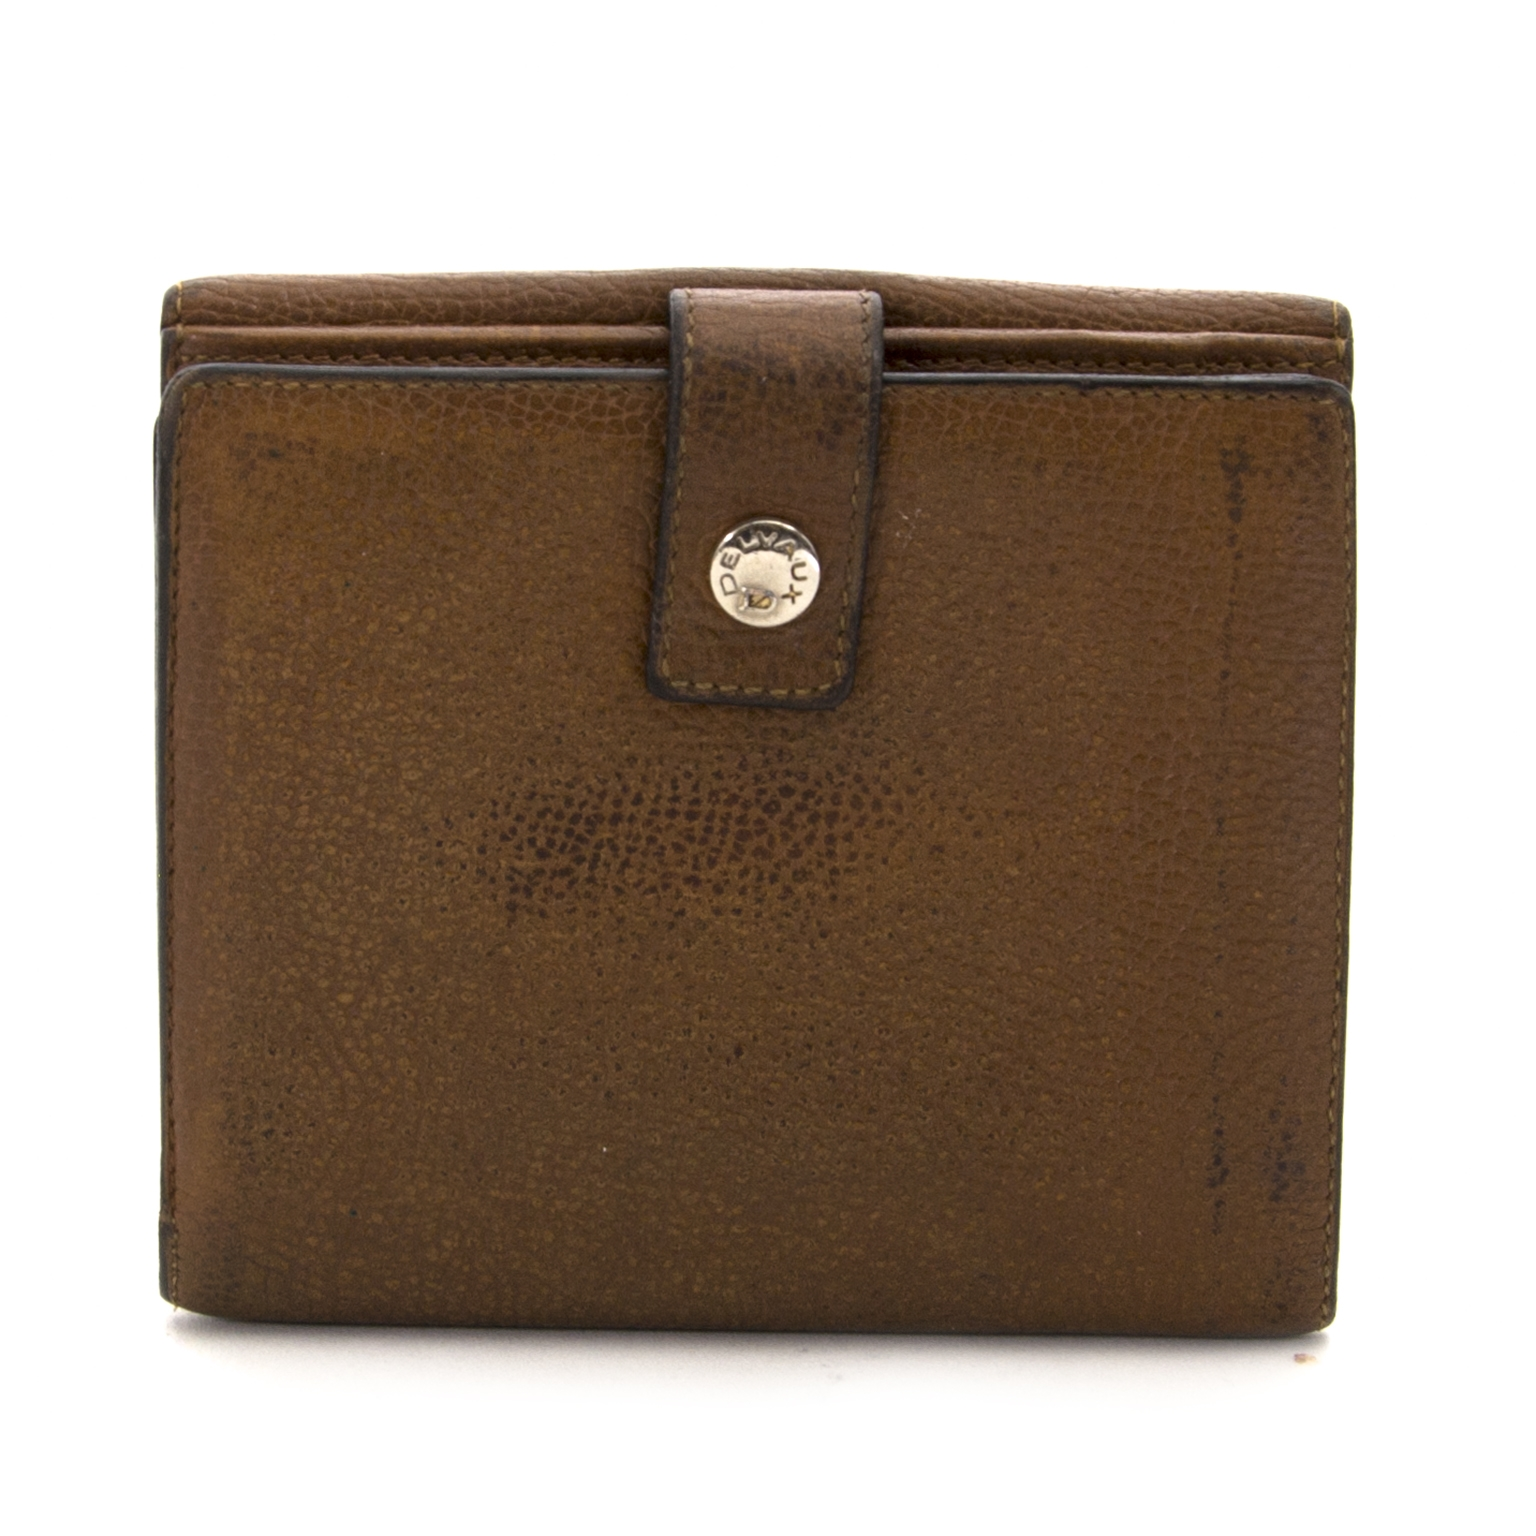 delvaux brown leather wallet now for sale at labellov vintage fashion webshop belgium